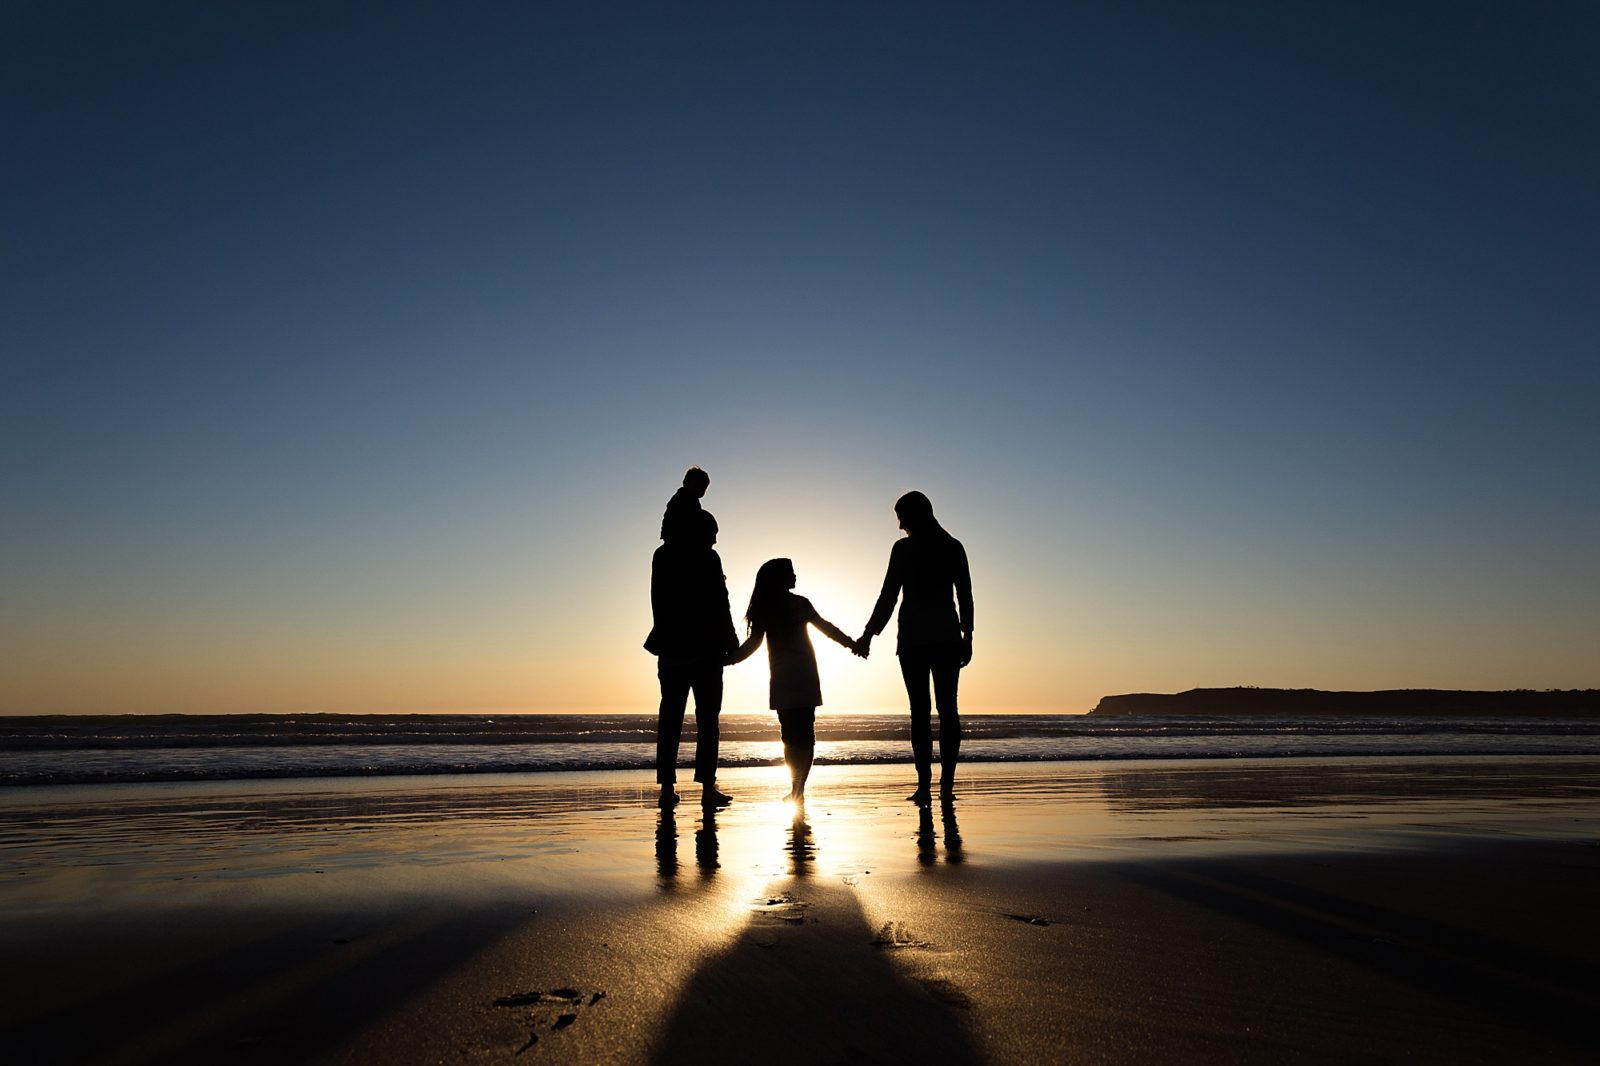 Family Silhouette | Beach Photos in December